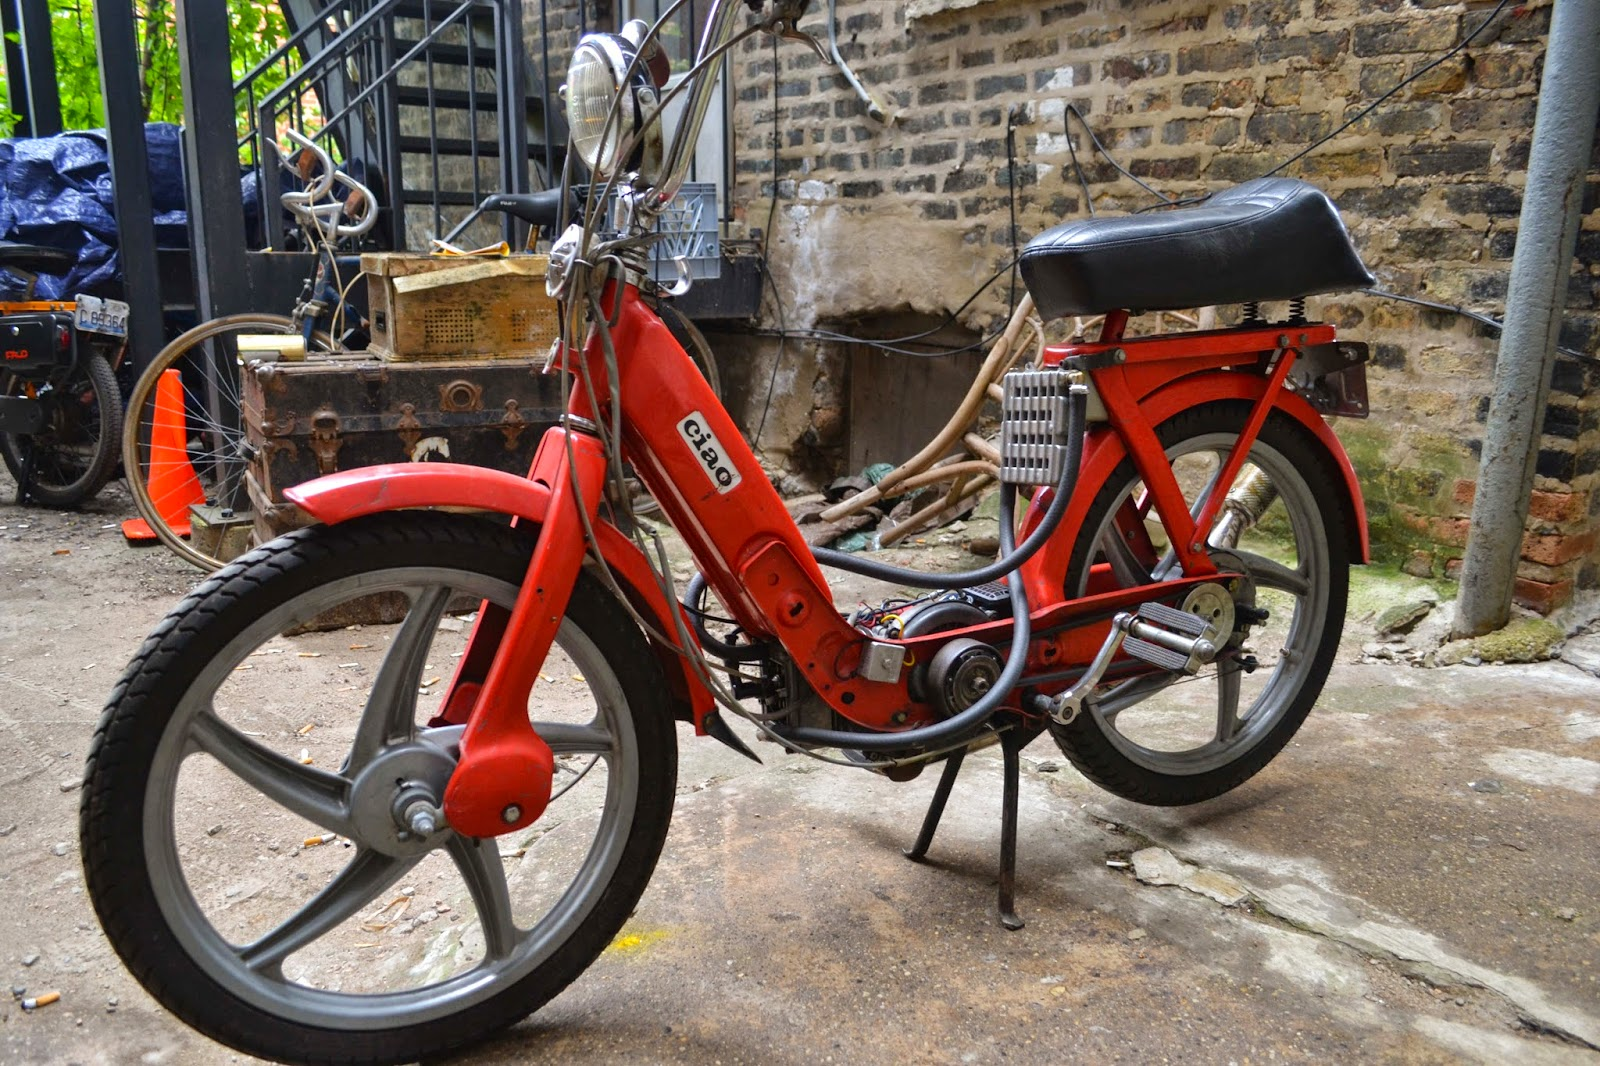 Home Alone with Mopeds : Experimenting with my water-cooled